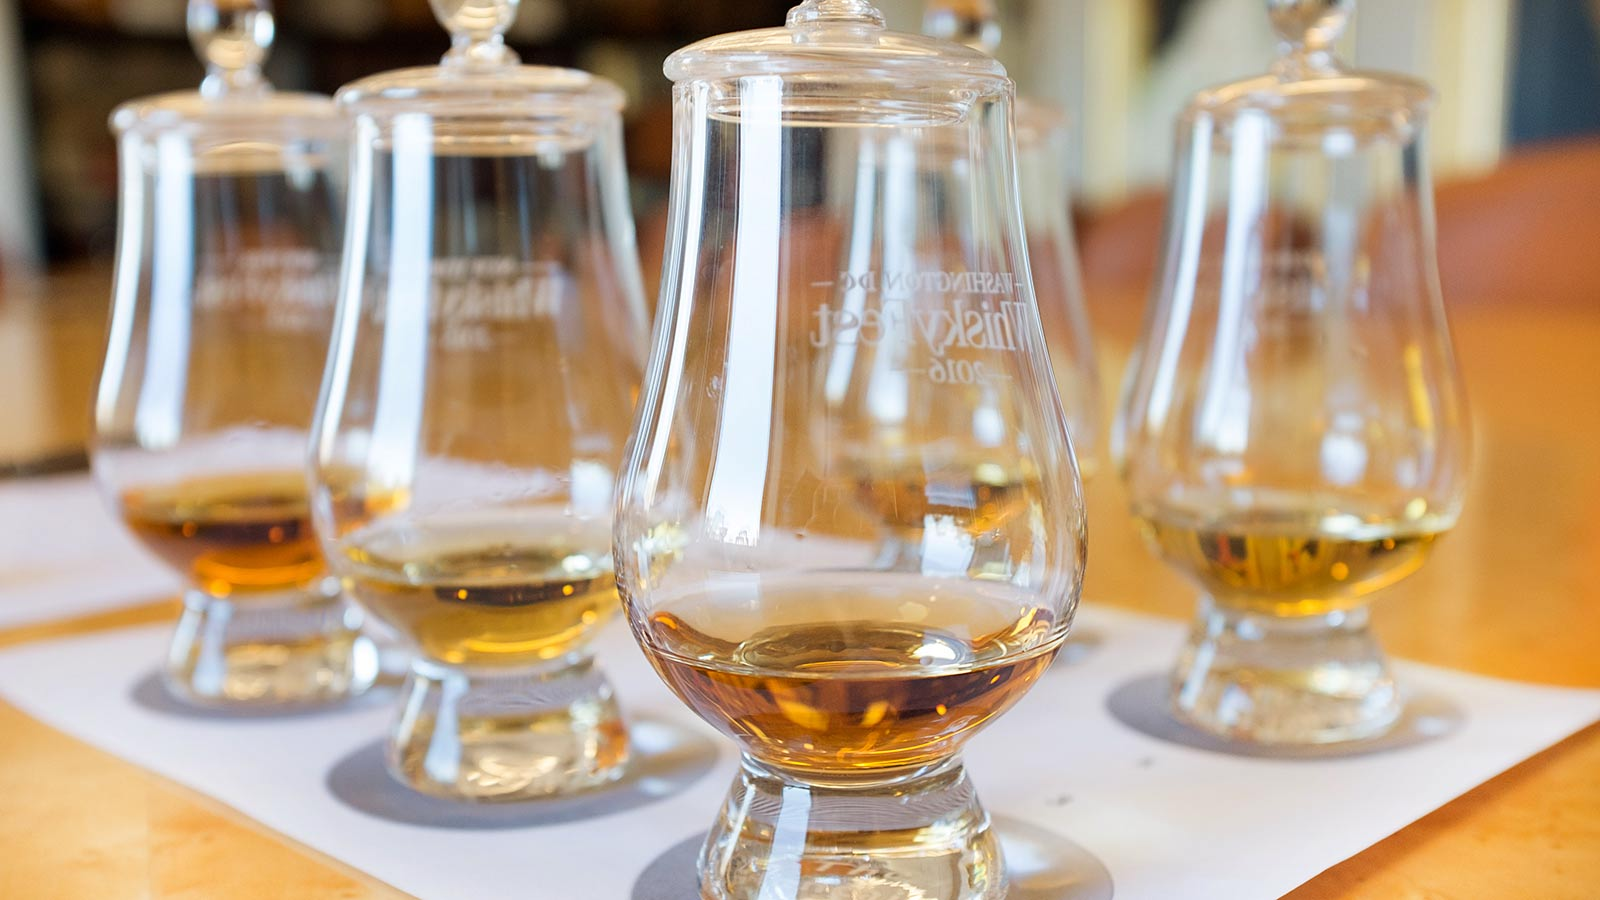 About the Whisky Advocate Top 20